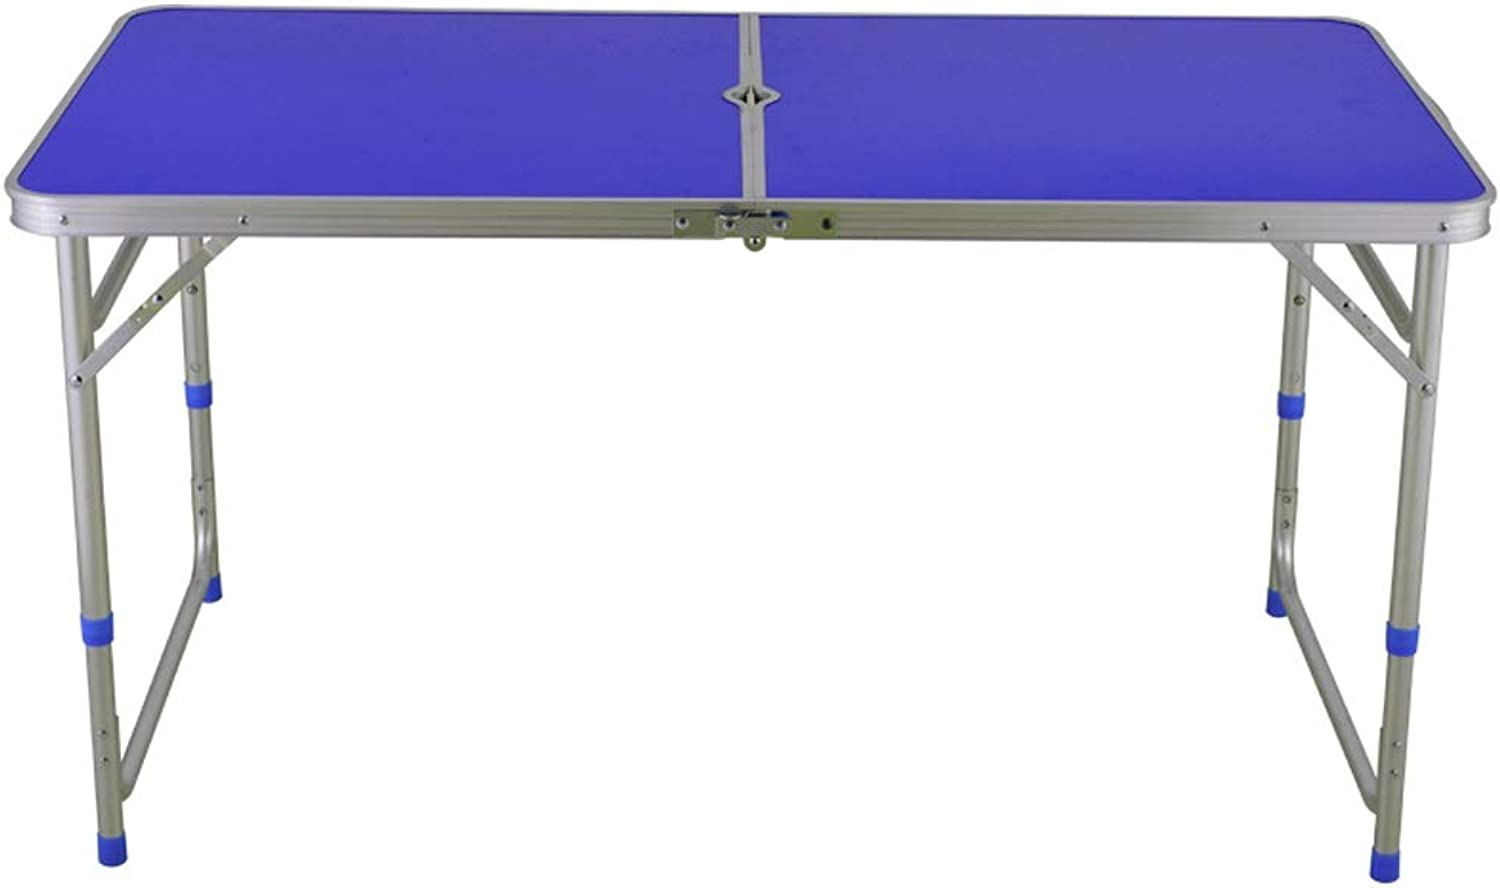 Qing MEI Folding Table, Rectangular Aluminum Alloy Lifting Table, Outdoor Portable Push Table, Barbecue Table, Household Folding Table, Portable Simple Computer Table A++ (color   B)